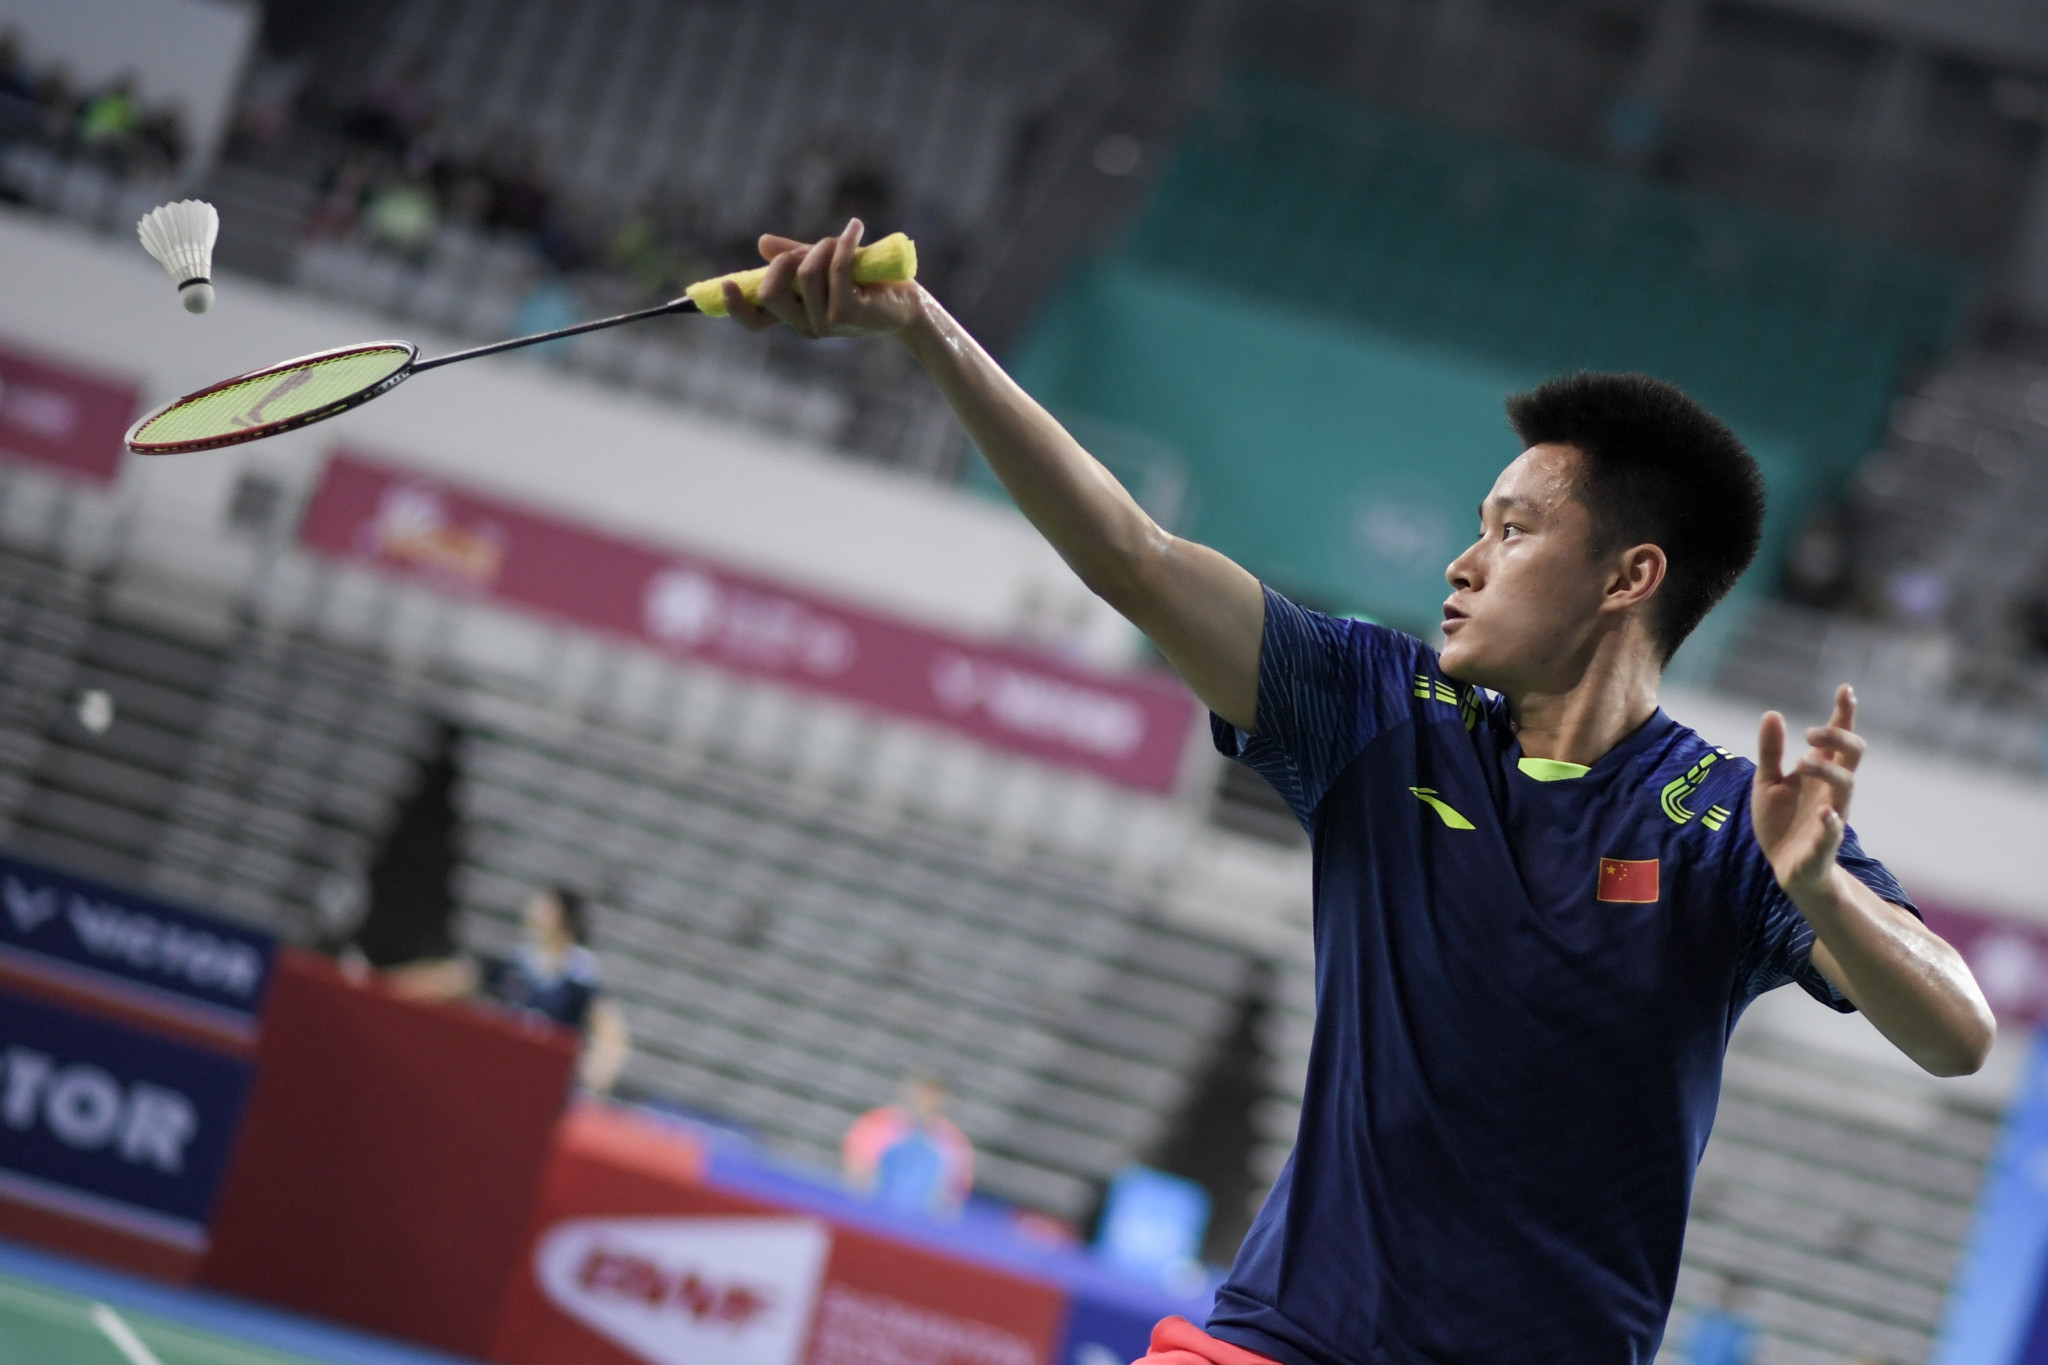 China's qualifier Zhou Zeqi has reached the BWF Macau Open men's singles final ©Getty Images